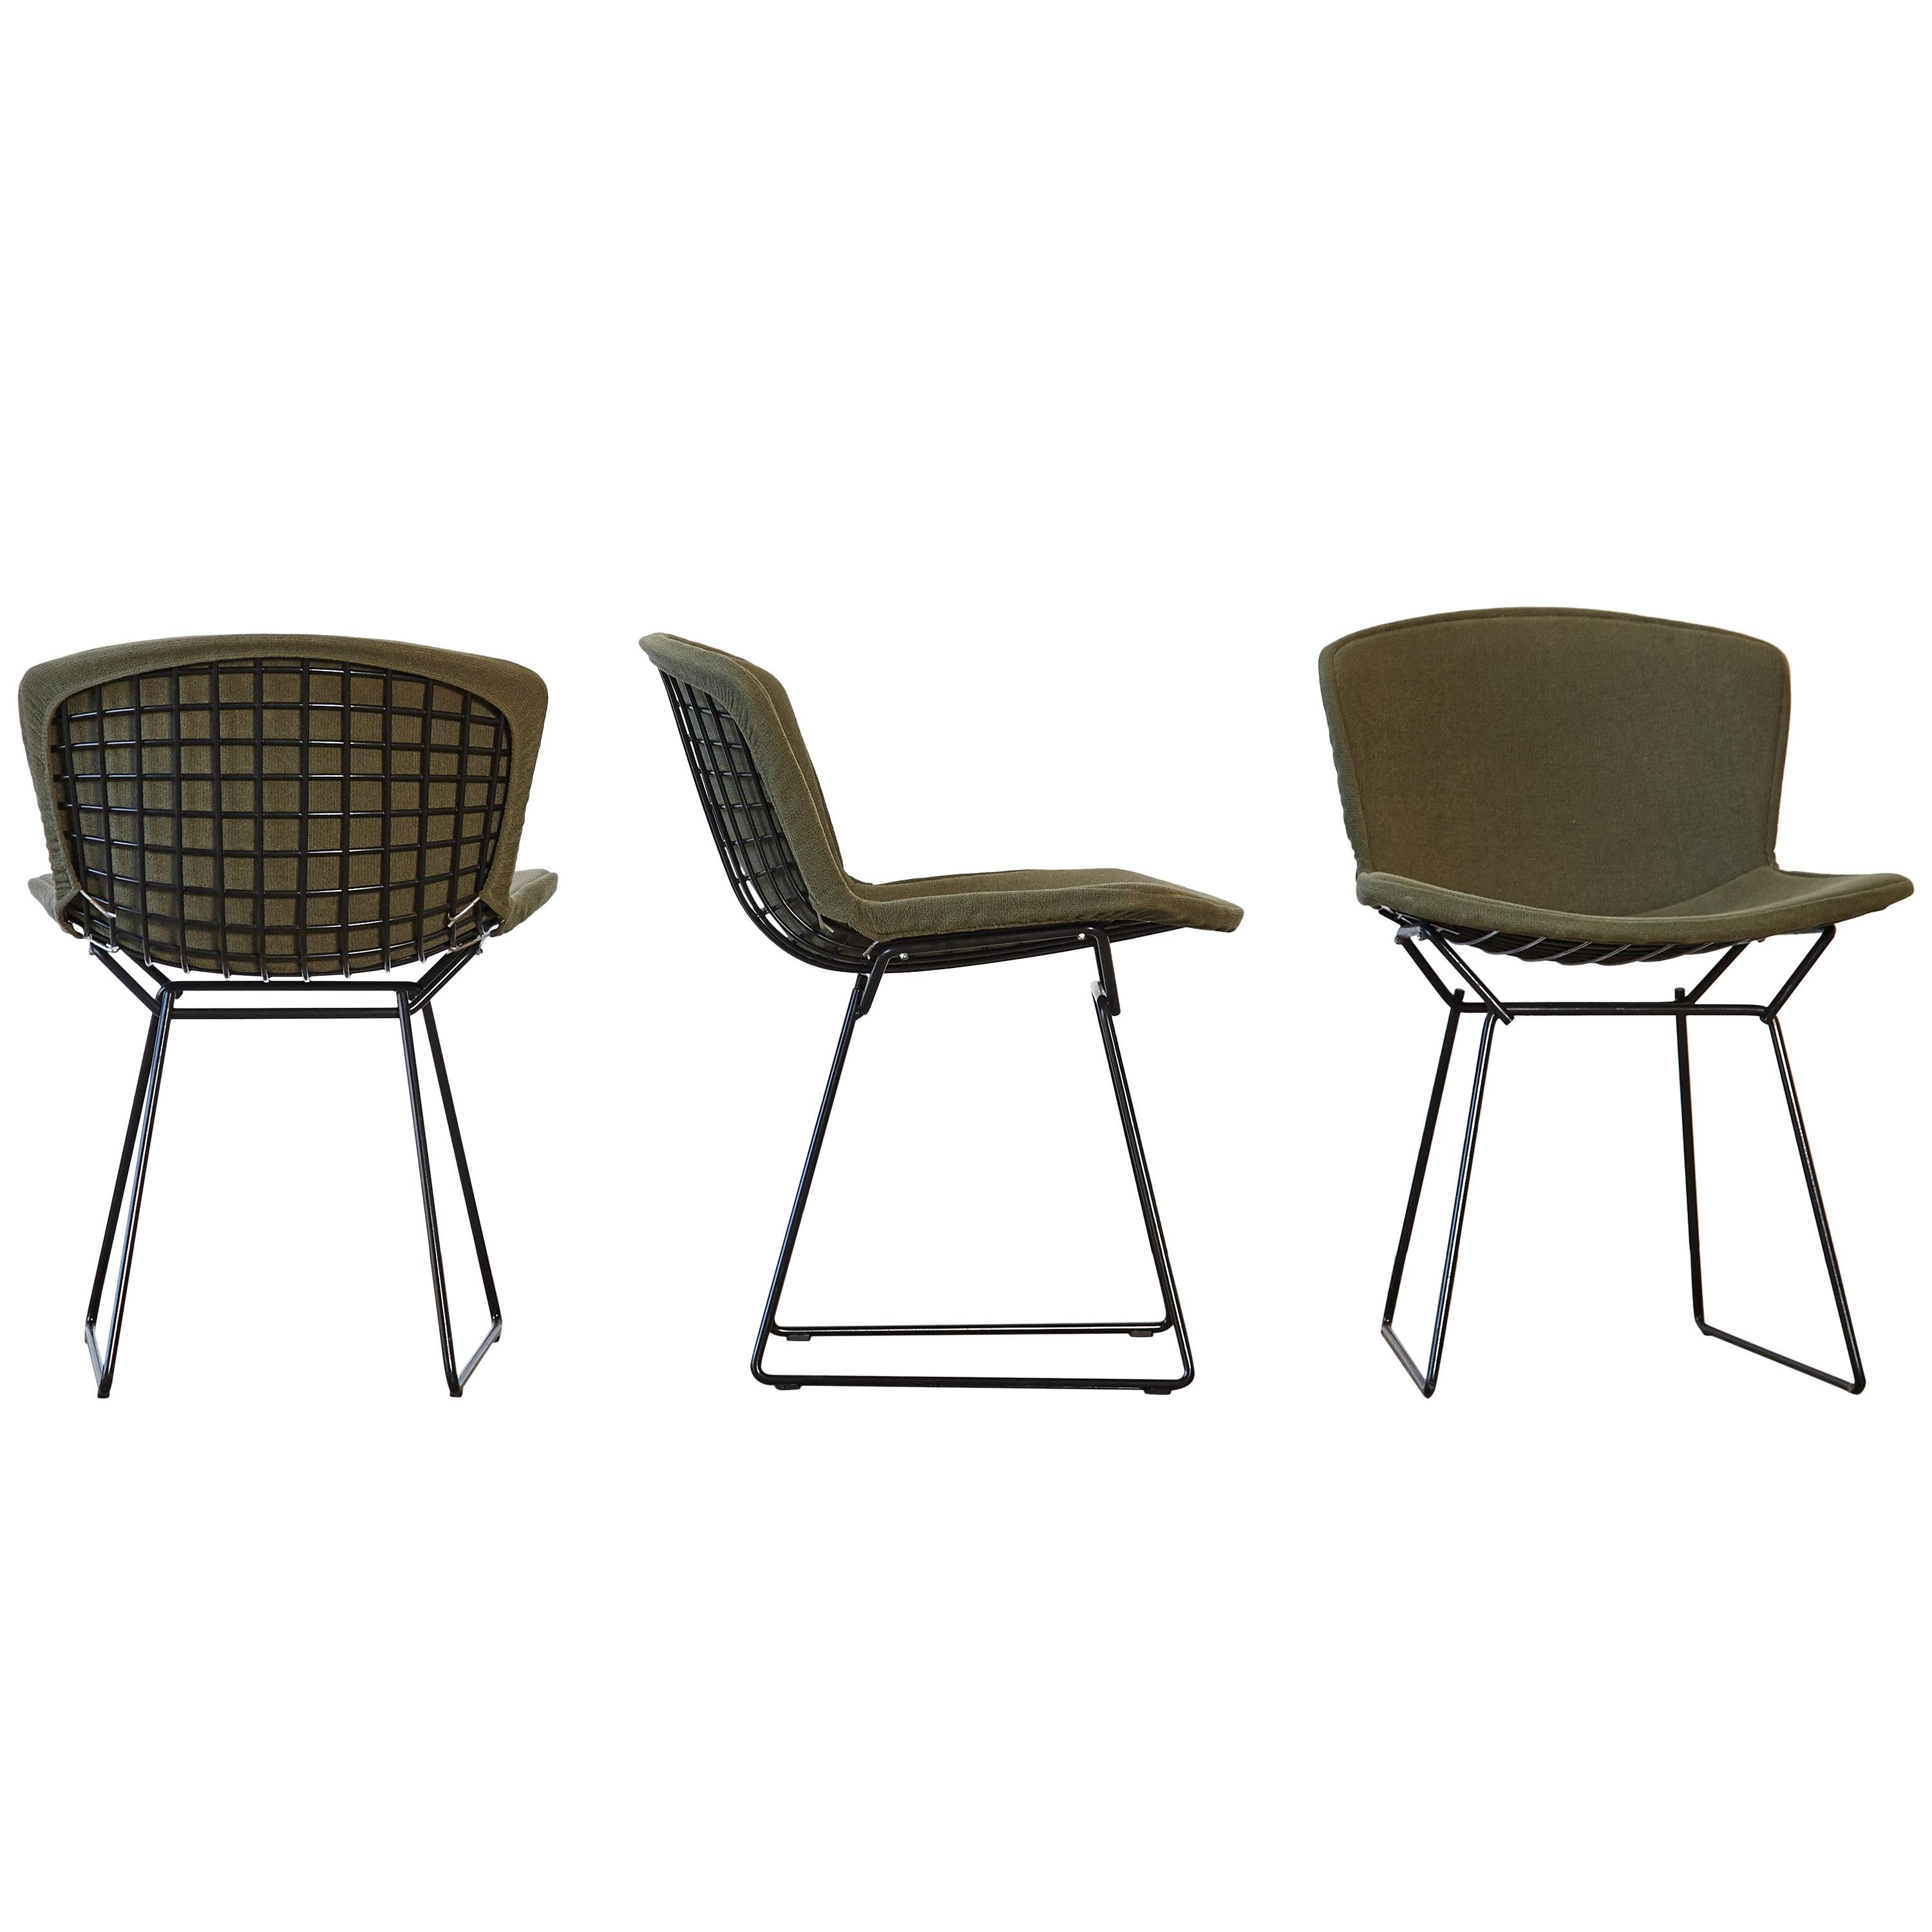 Harry Bertoia Wire Chairs with Original Green Seat Covers, Knoll, USA